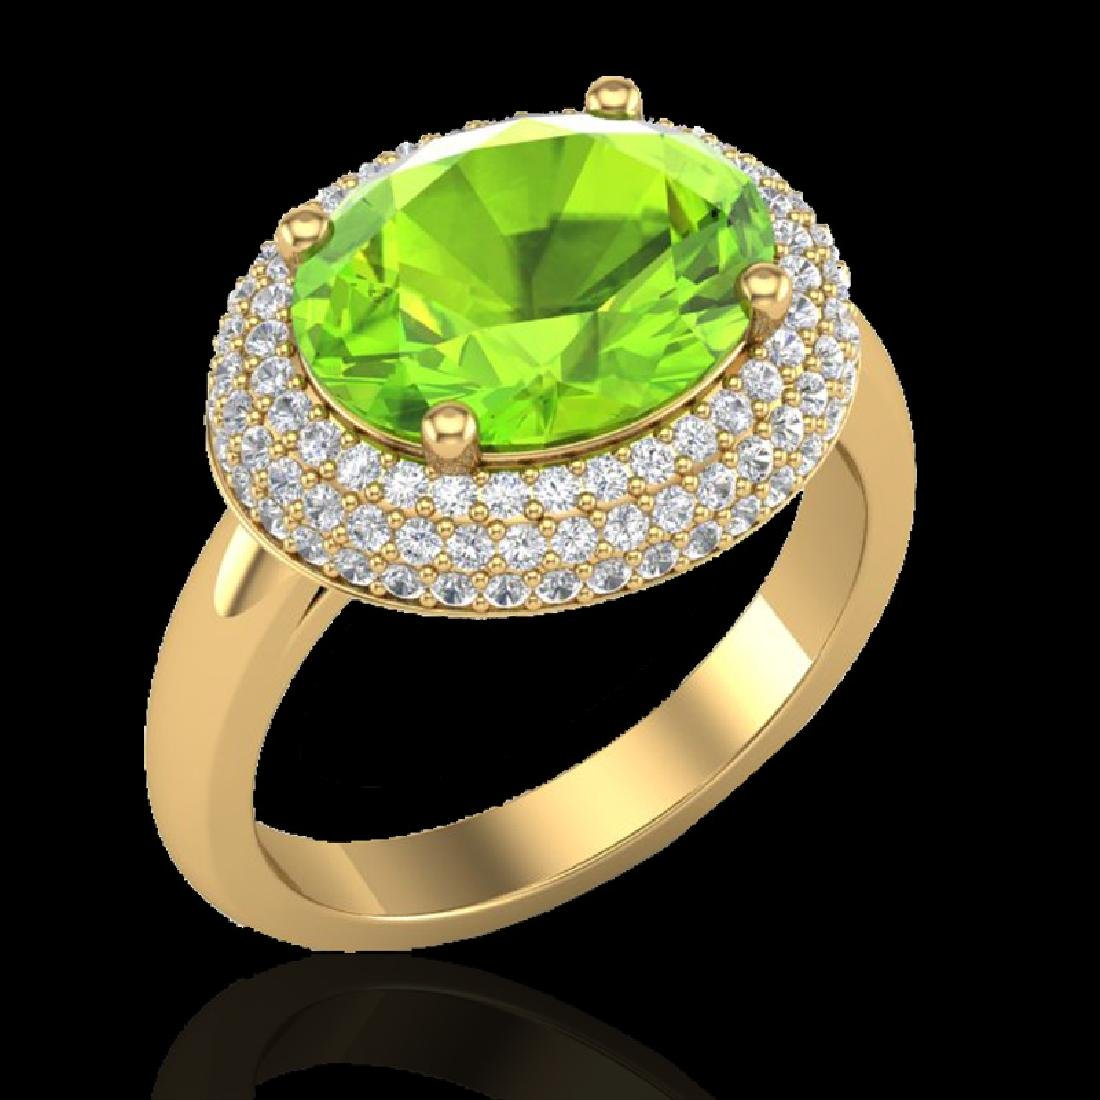 4.50 CTW Peridot & Micro Pave VS/SI Diamond Ring 18K